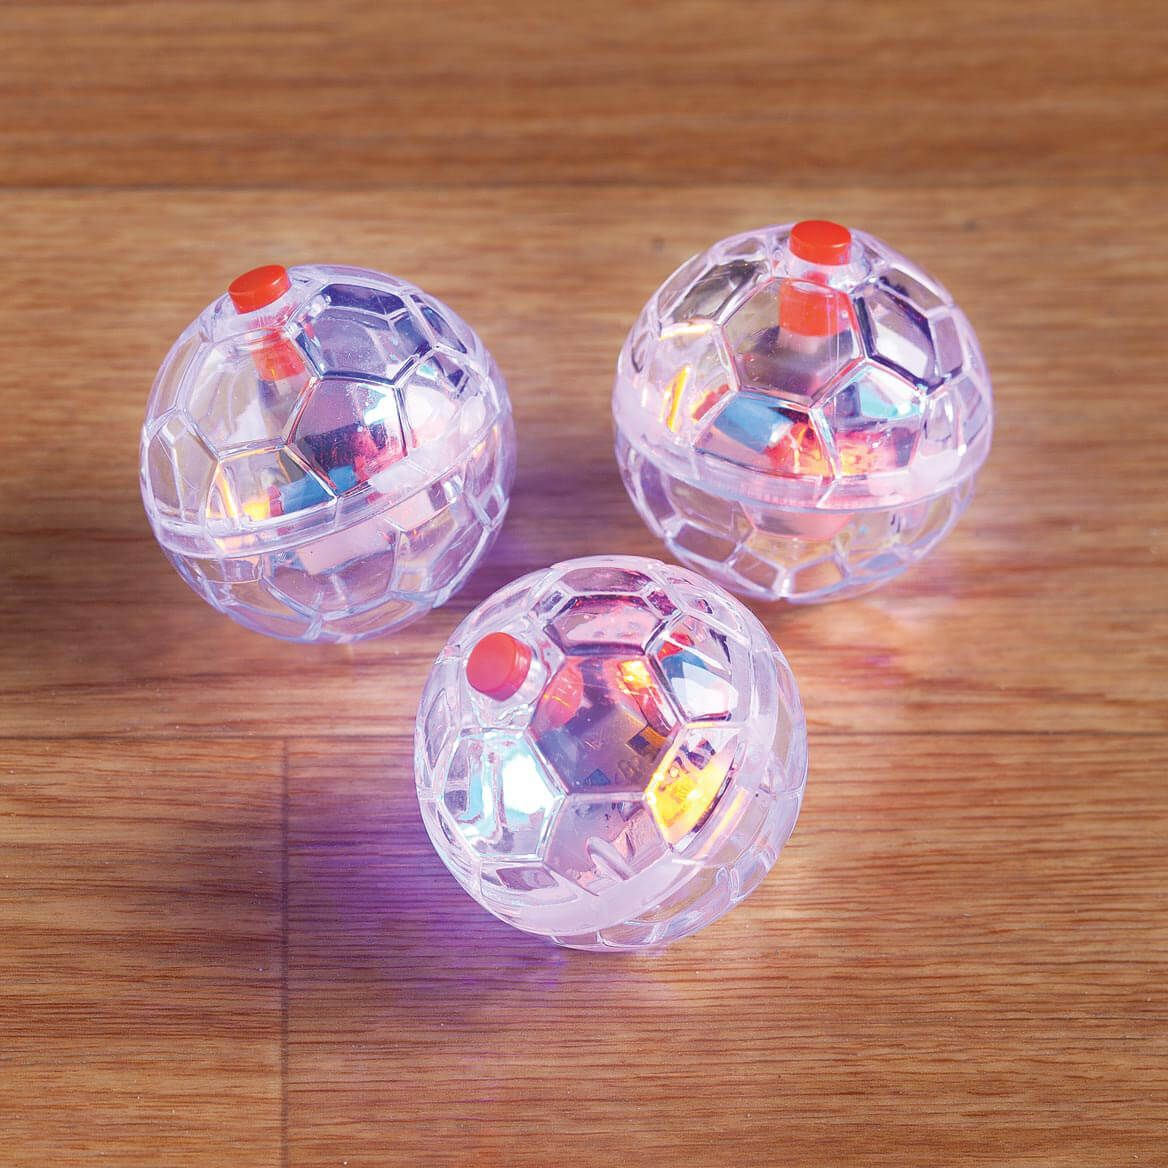 Motion Activated Cat Balls, Set of 3-358087